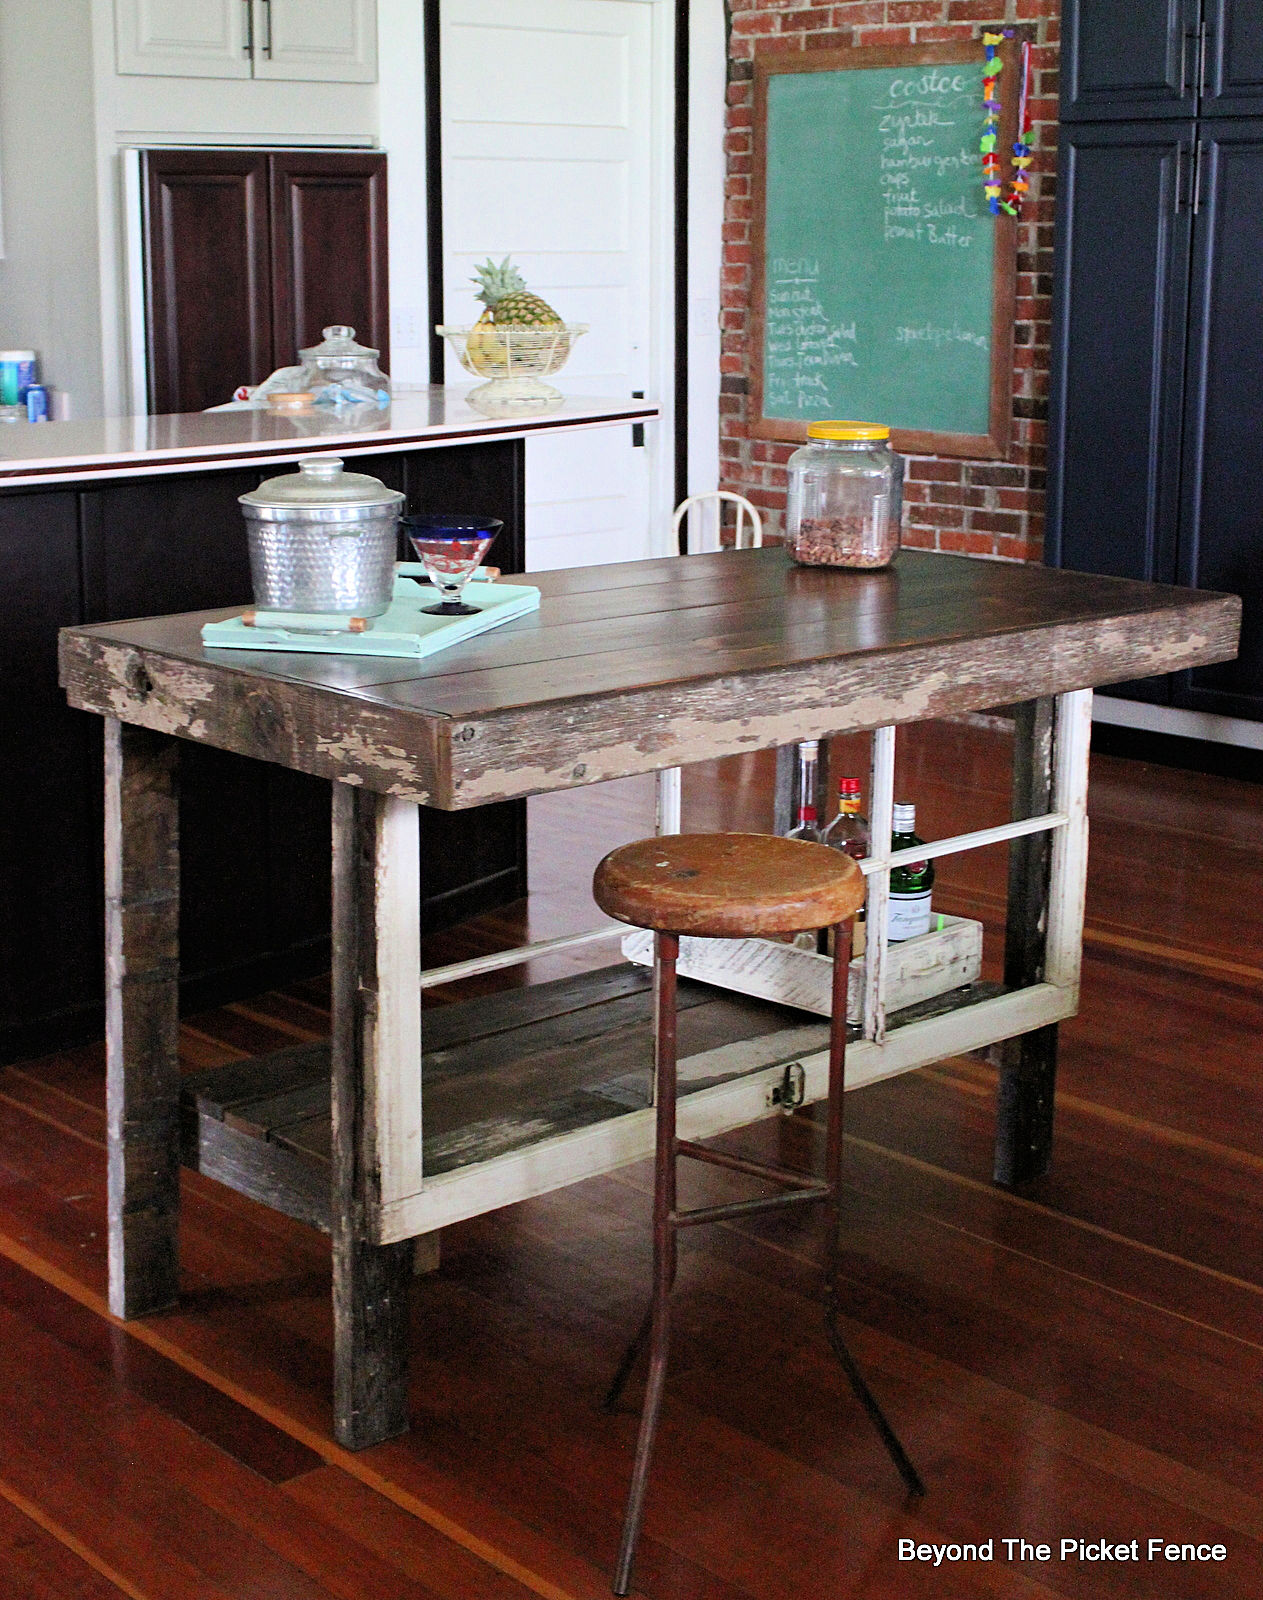 Beyond The Picket Fence: Rustic Farmhouse Kitchen Island and Bar